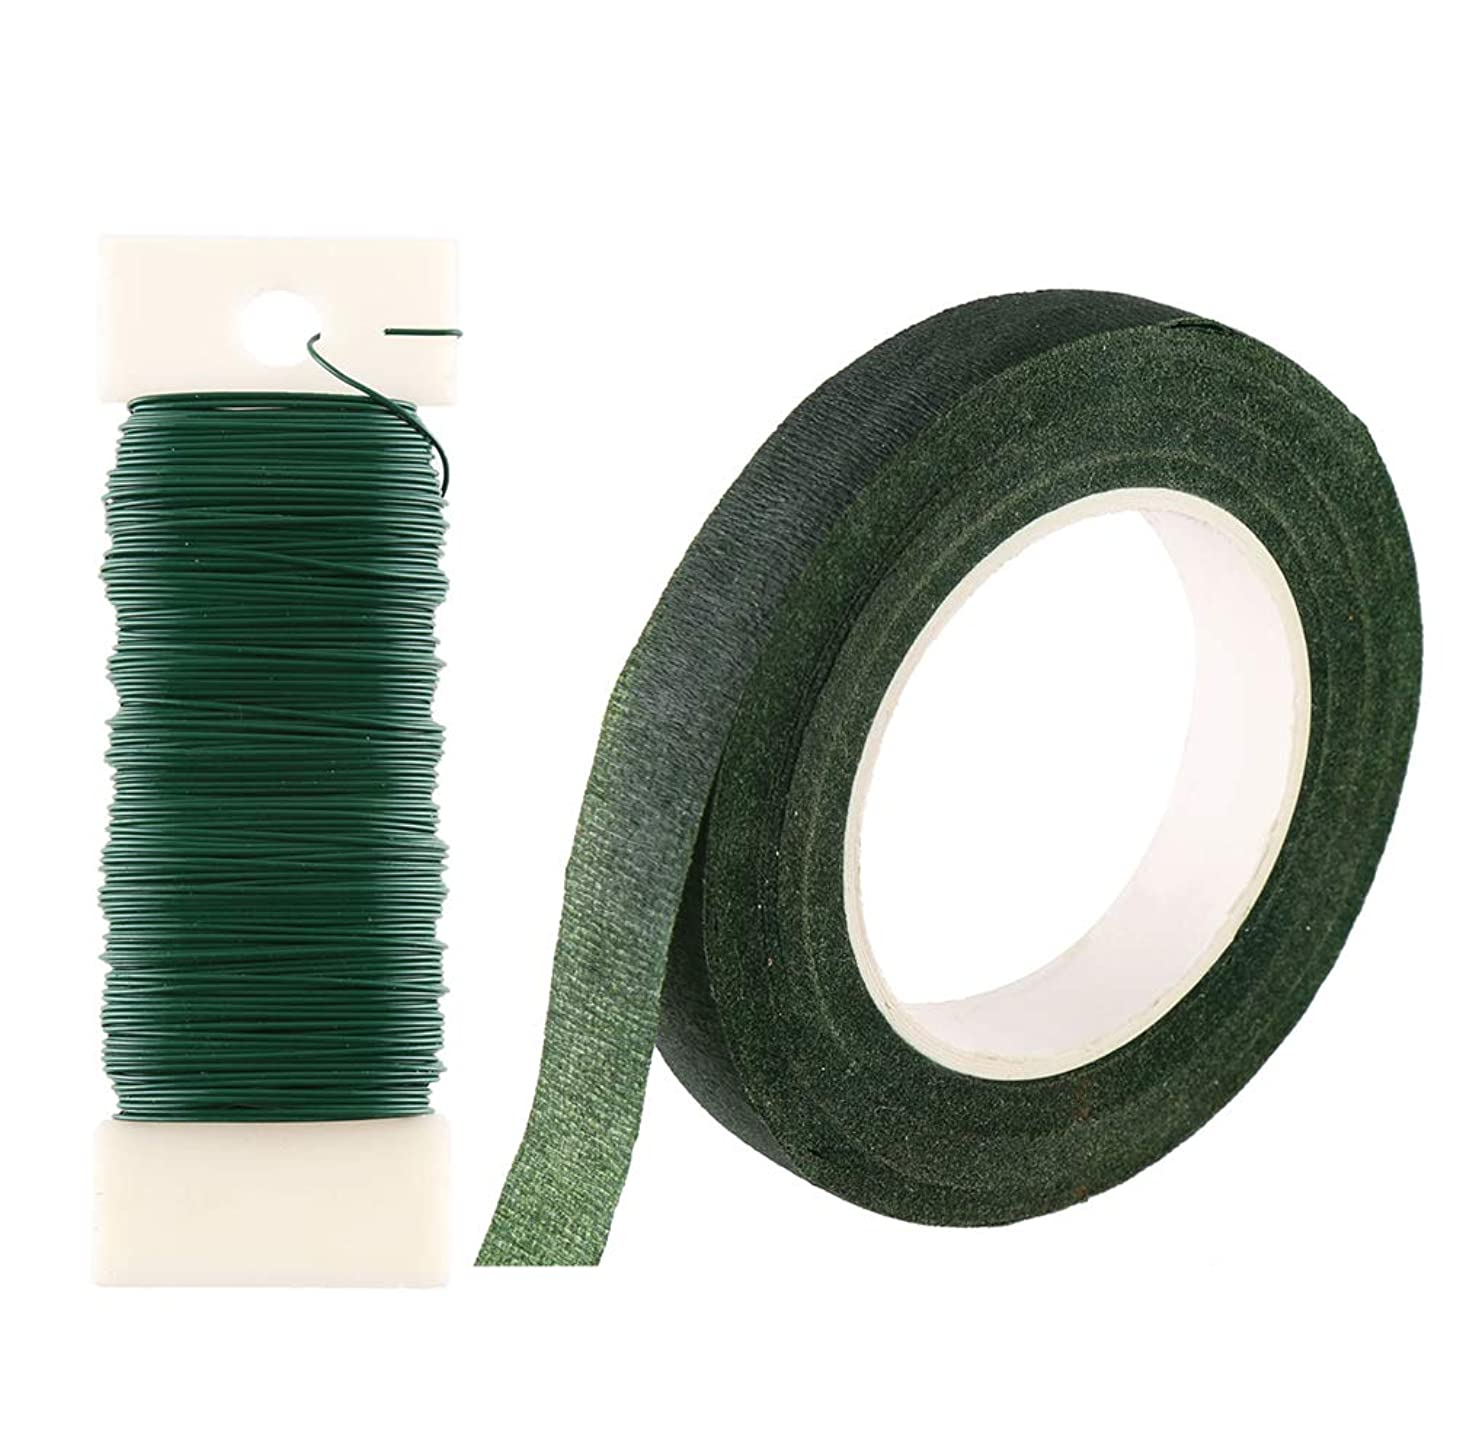 CCINEE Floral Arranging Kits 1/2 Inch Dark Green Floral Tape with 22 Guage Dark Green Paddle Wire 40 Meters/ 43.7 Feet